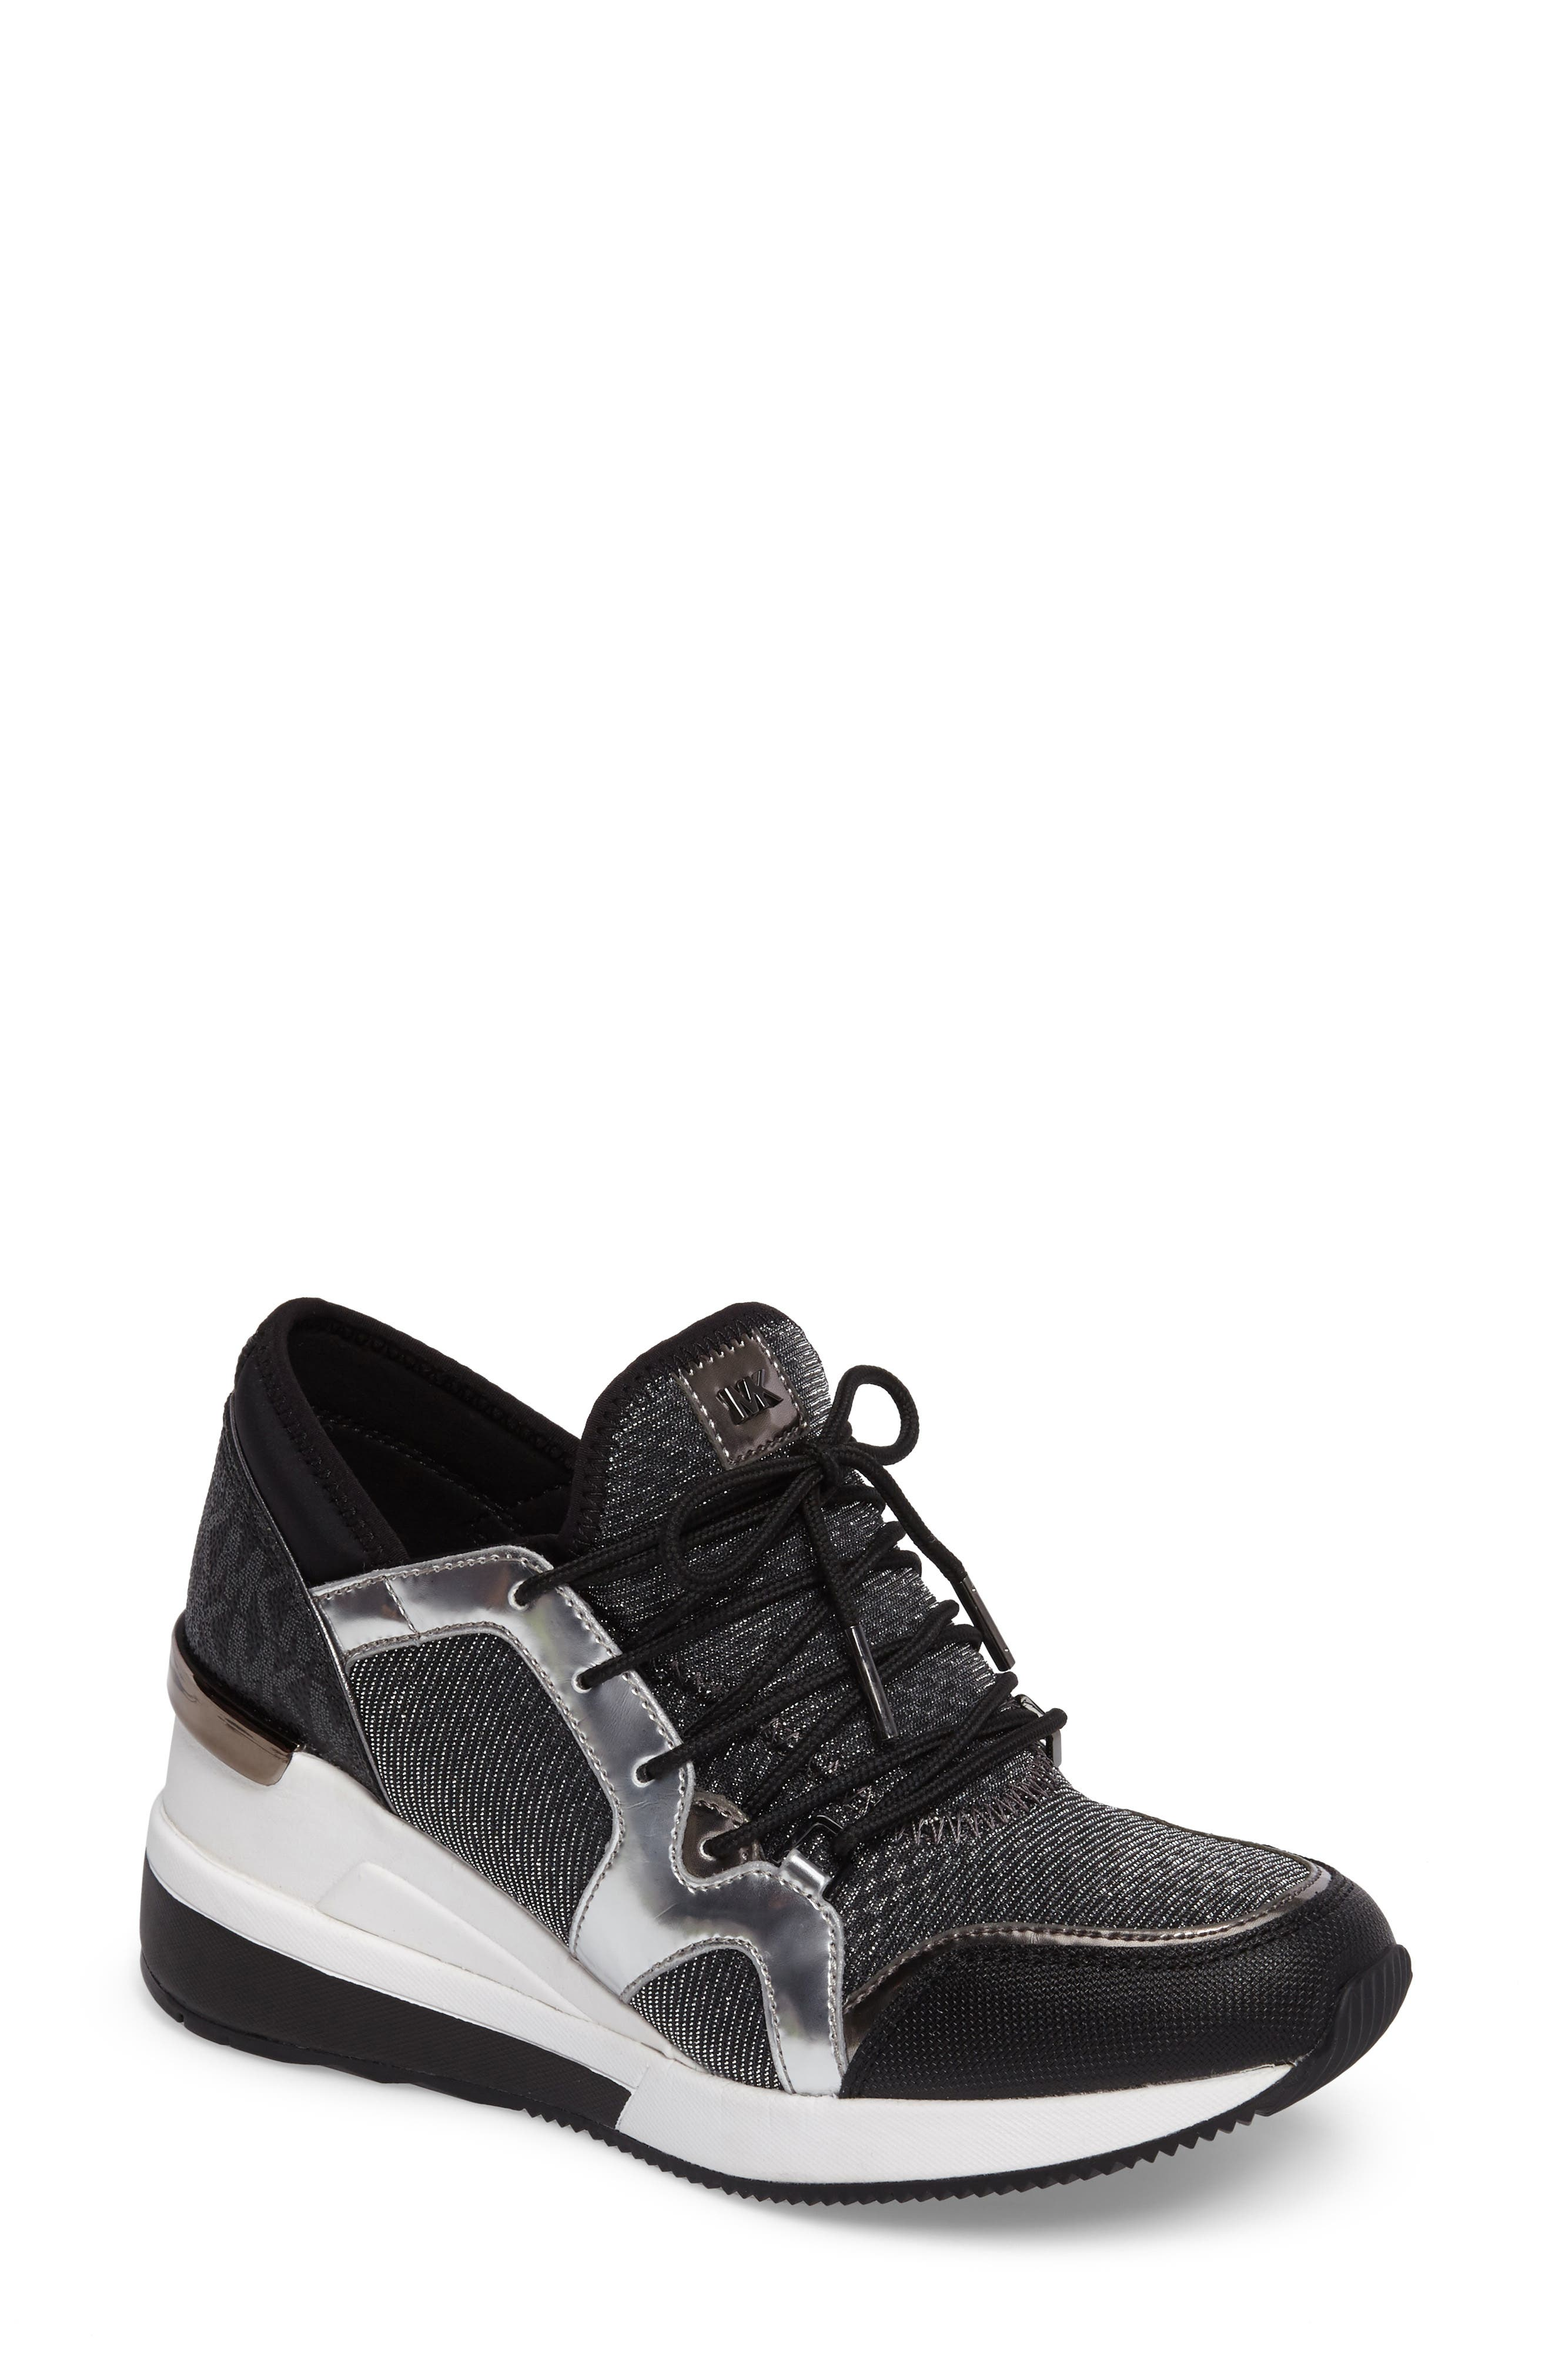 Scout Wedge Sneaker,                         Main,                         color, 041